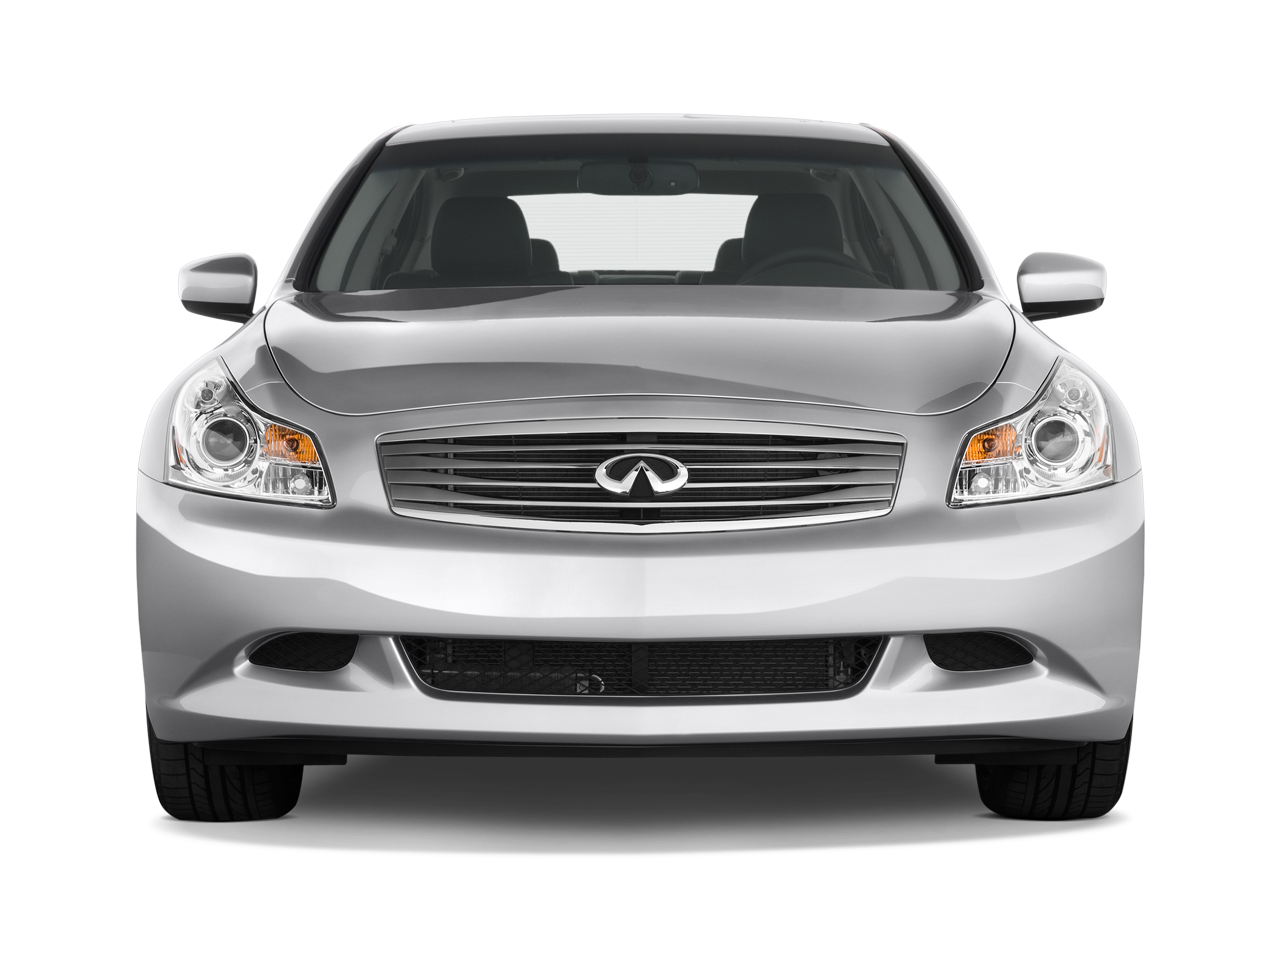 2009 infiniti g37 sedan 6mt infiniti luxury sedan. Black Bedroom Furniture Sets. Home Design Ideas